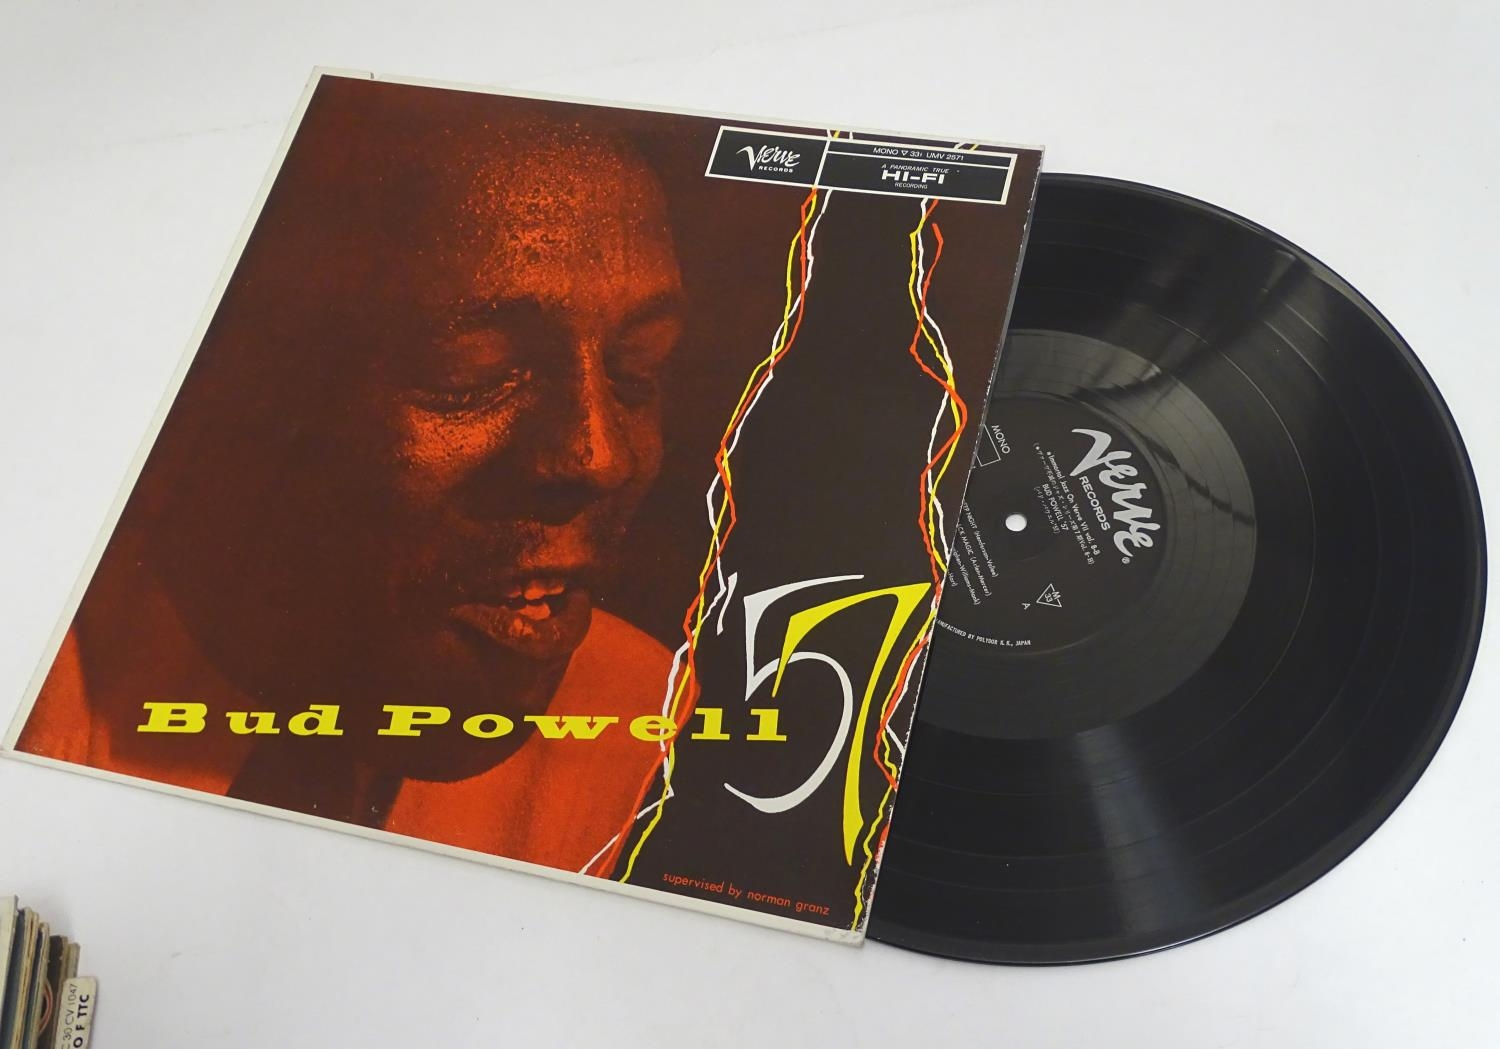 A collection of 20thC 33 rpm Vinyl records / LPs, - Jazz, comprising: The Eddie Condon Floor Show 2, - Image 14 of 19